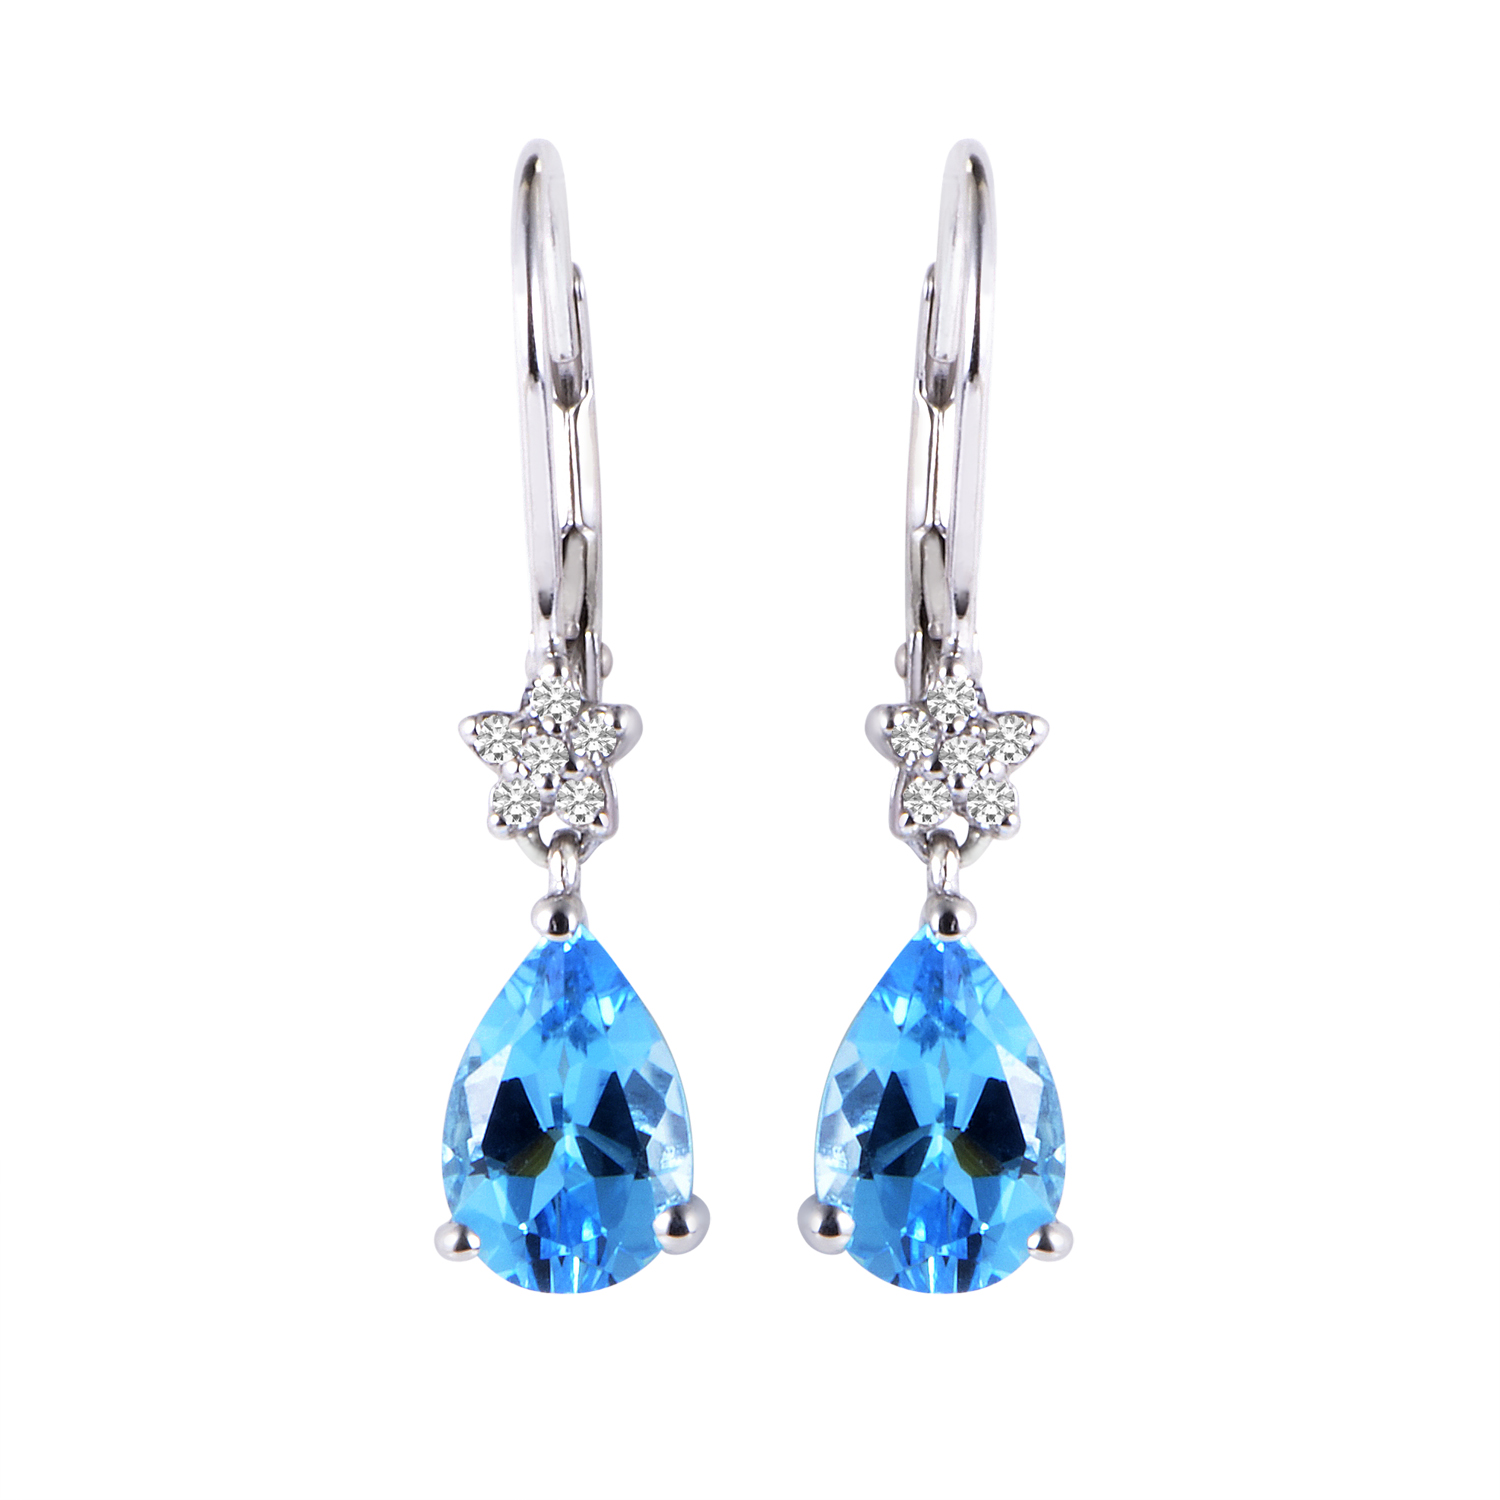 Women's 14K White Gold Diamond & Topaz Dangle Earrings EL4-10046WTB